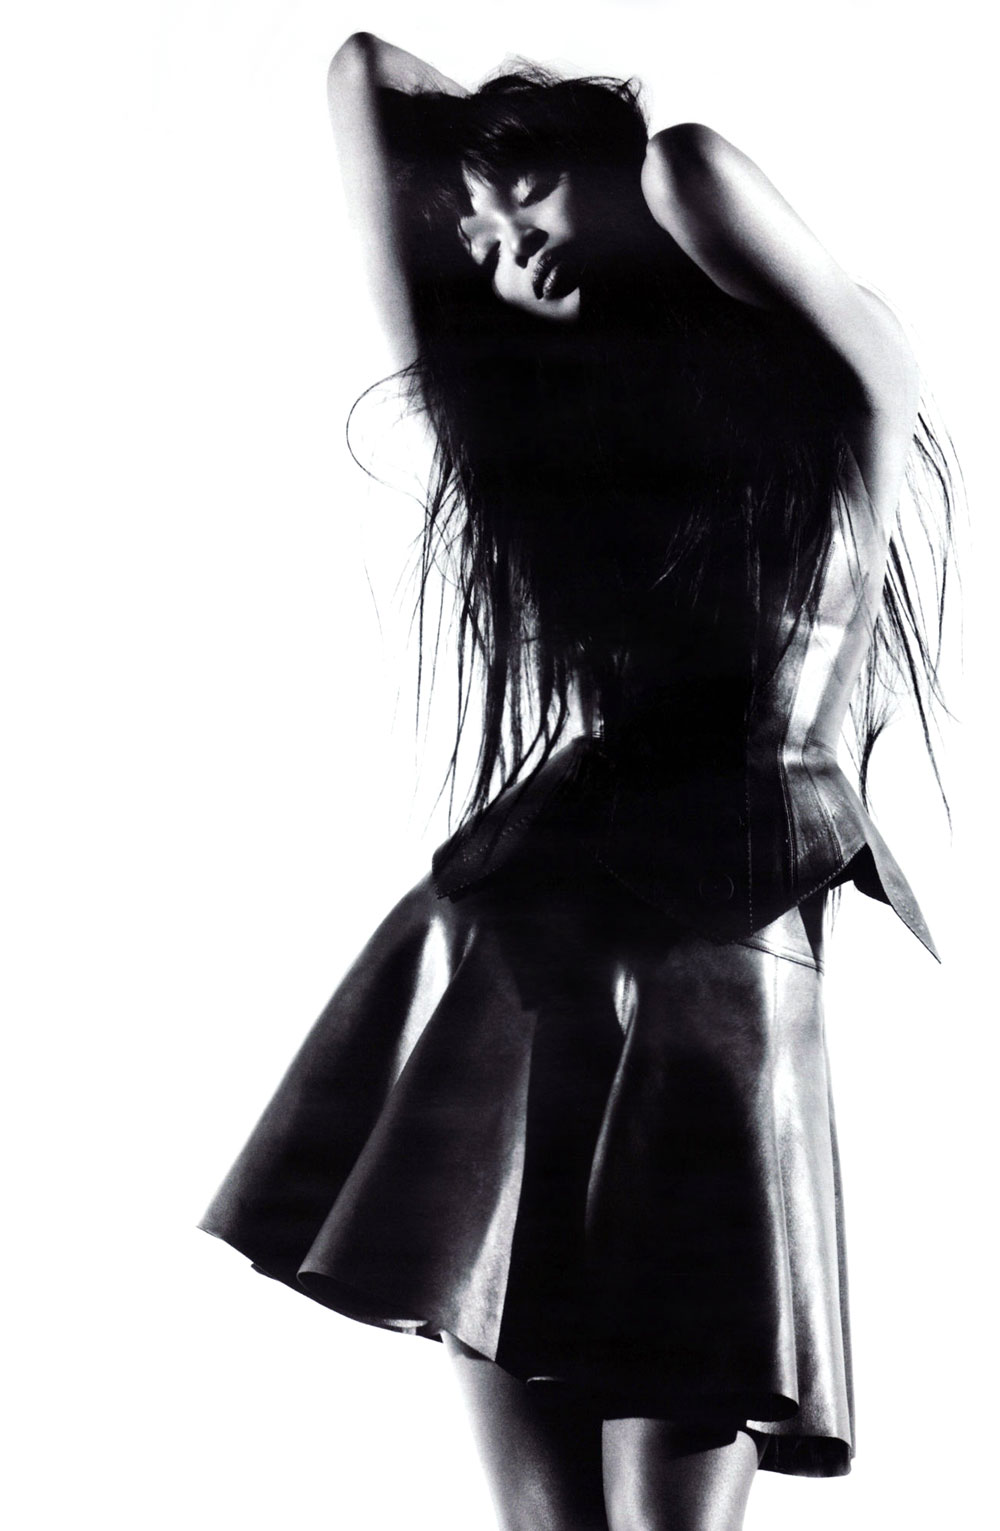 Naomi Campbell wearing Azzedine Alaia in Vogue Russia April 2010 (photography: Willy Vanderperre, styling: Edward Enninful)